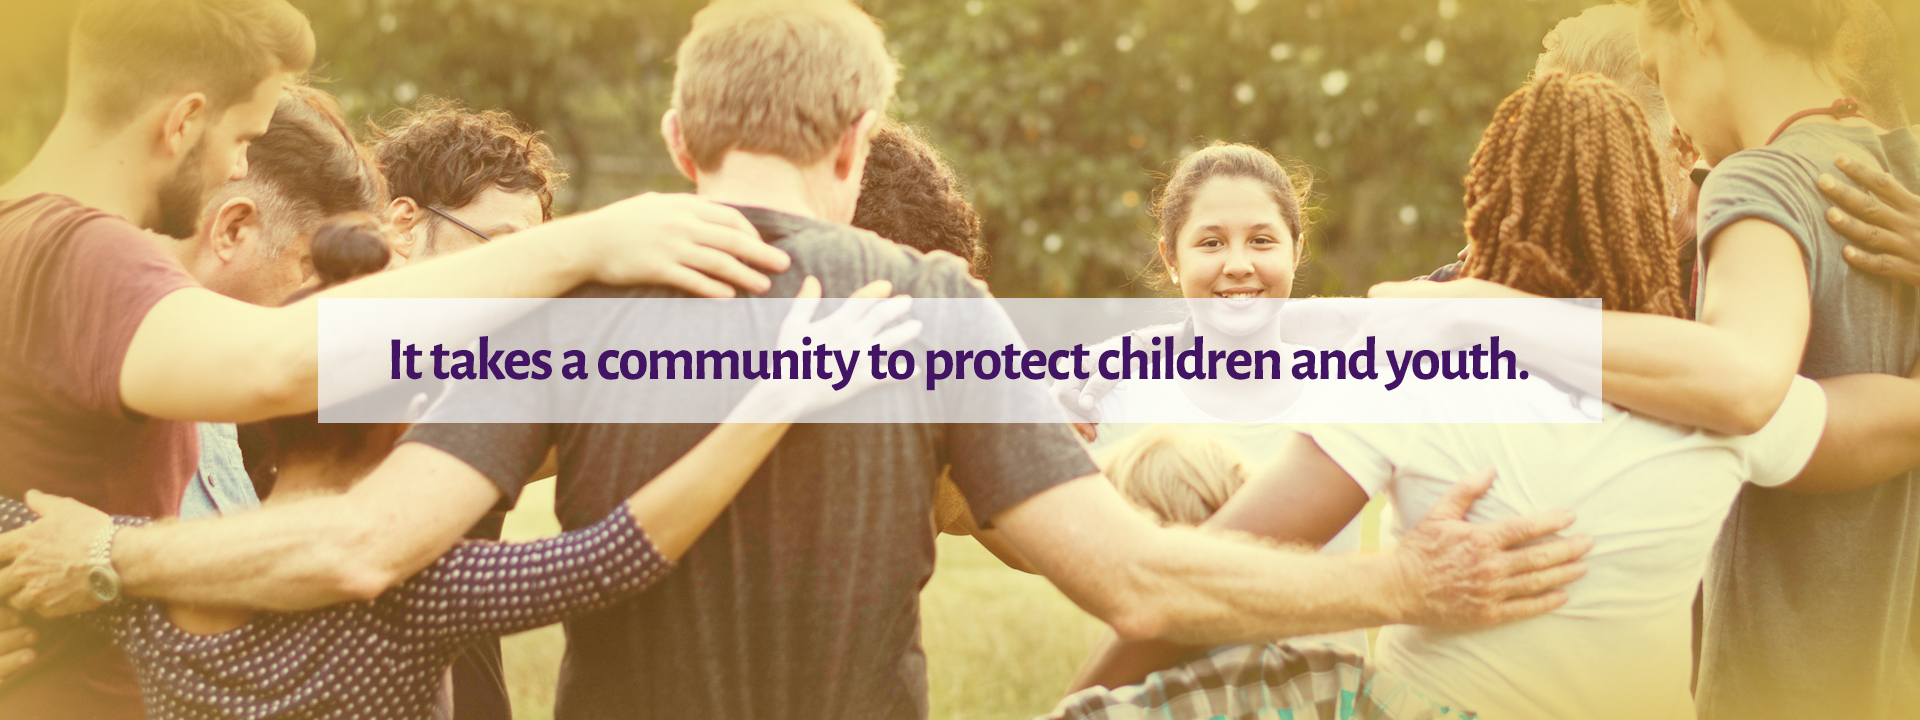 It takes a community to protect children and youth.